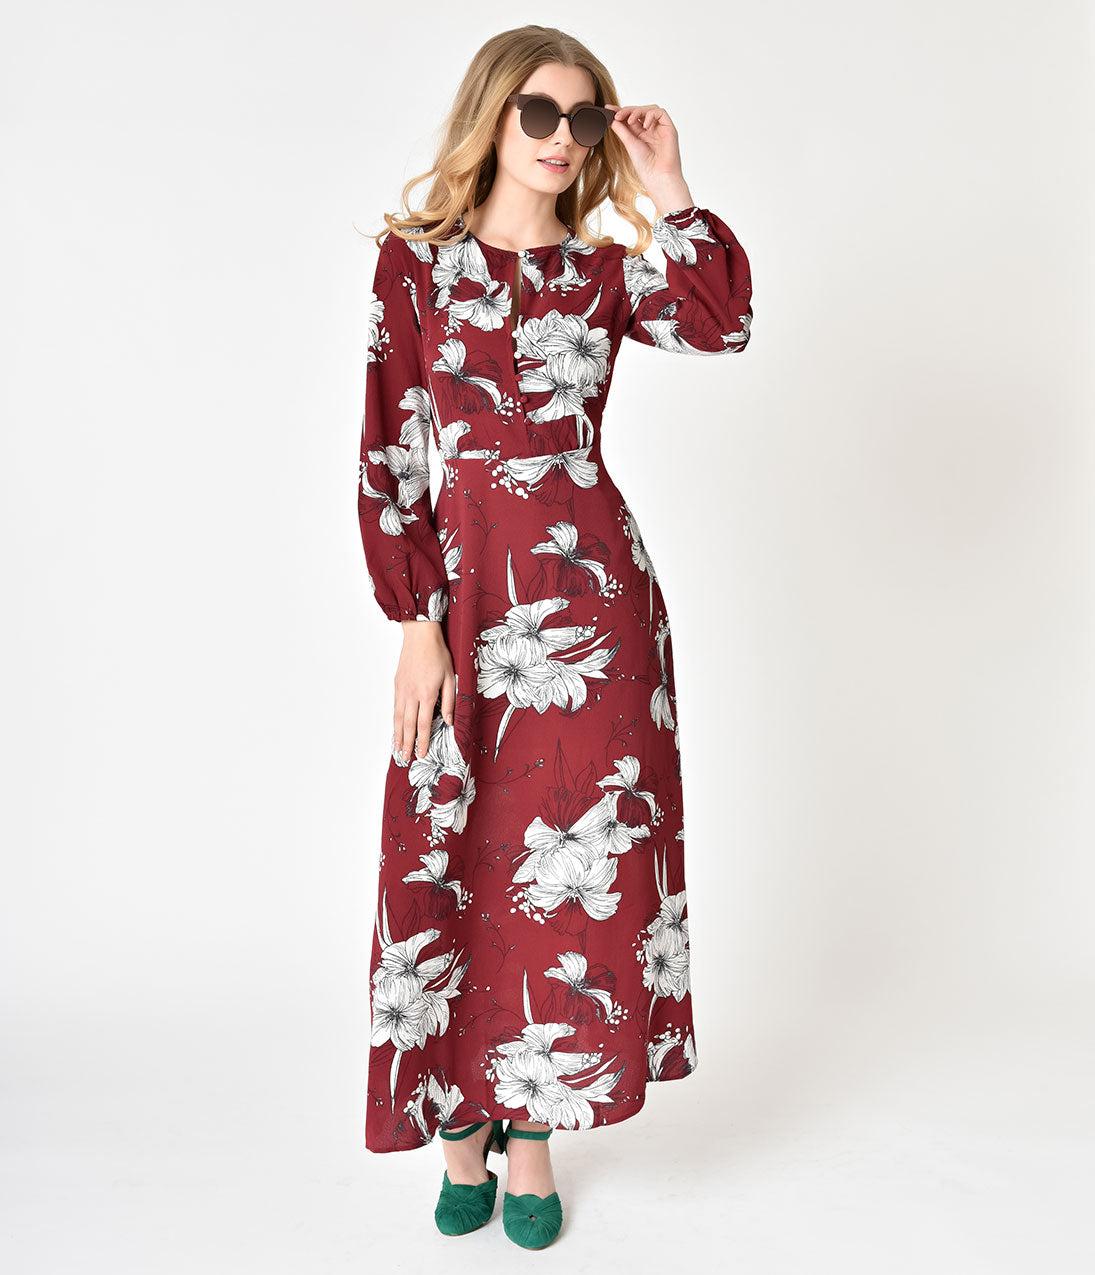 1960s Dresses: New 60s Style Dresses – Jackie O to Mod 1970s Style Burgundy  Ivory Floral Long Sleeve Crepe Maxi Dress $54.00 AT vintagedancer.com